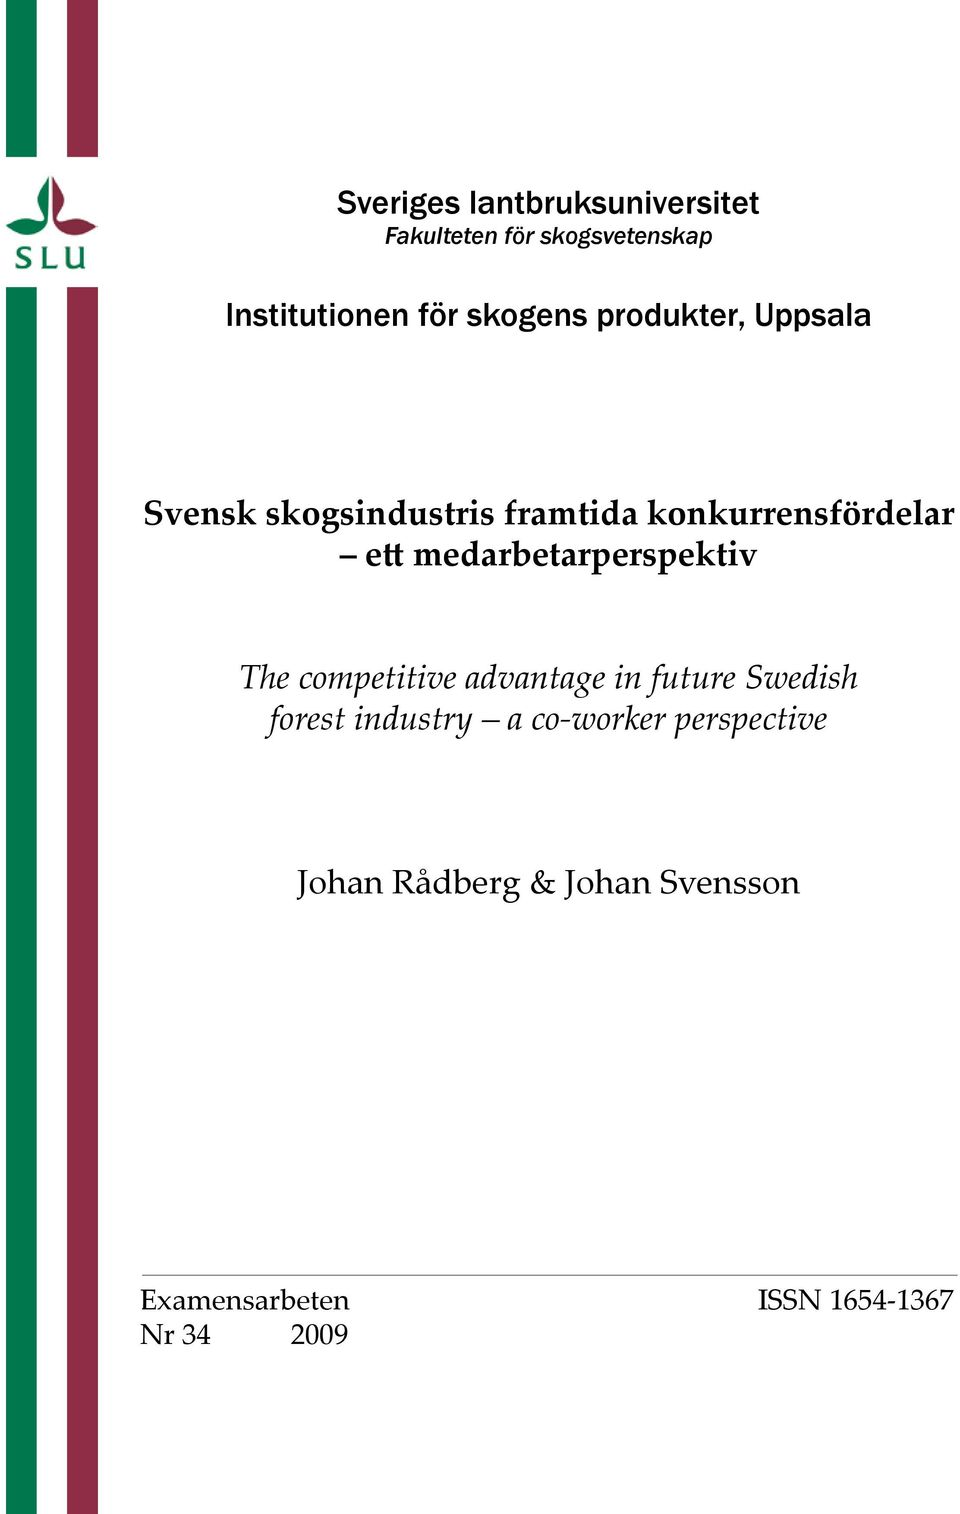 medarbetarperspektiv The competitive advantage in future Swedish forest industry a